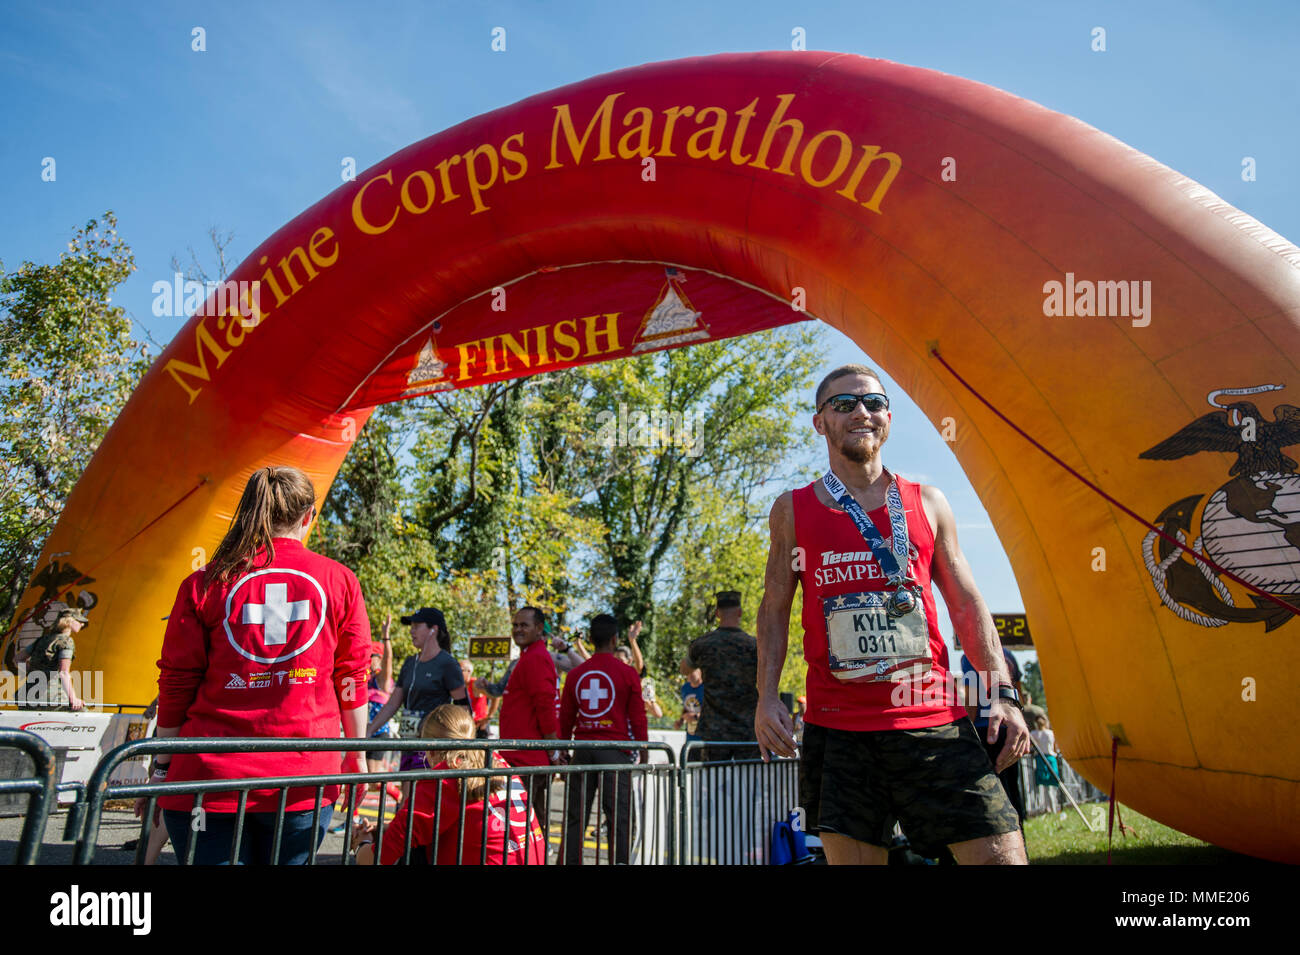 "Medal of Honor recipient, retired U.S. Marine Corps Cpl. Kyle Carpenter, poses for a photo after completing the 42nd Marine Corps Marathon, Arlington, Va., Oct. 22, 2017. Also known as ""The People's Marathon,"" the 26.2 mile race drew roughly 30,000 participants to promote physical fitness, generate goodwill in the community, and showcase the organizational skills of the Marine Corps. (U.S. Marine Corps photo by Lance Cpl. Yasmin D. Perez) Stock Photo"